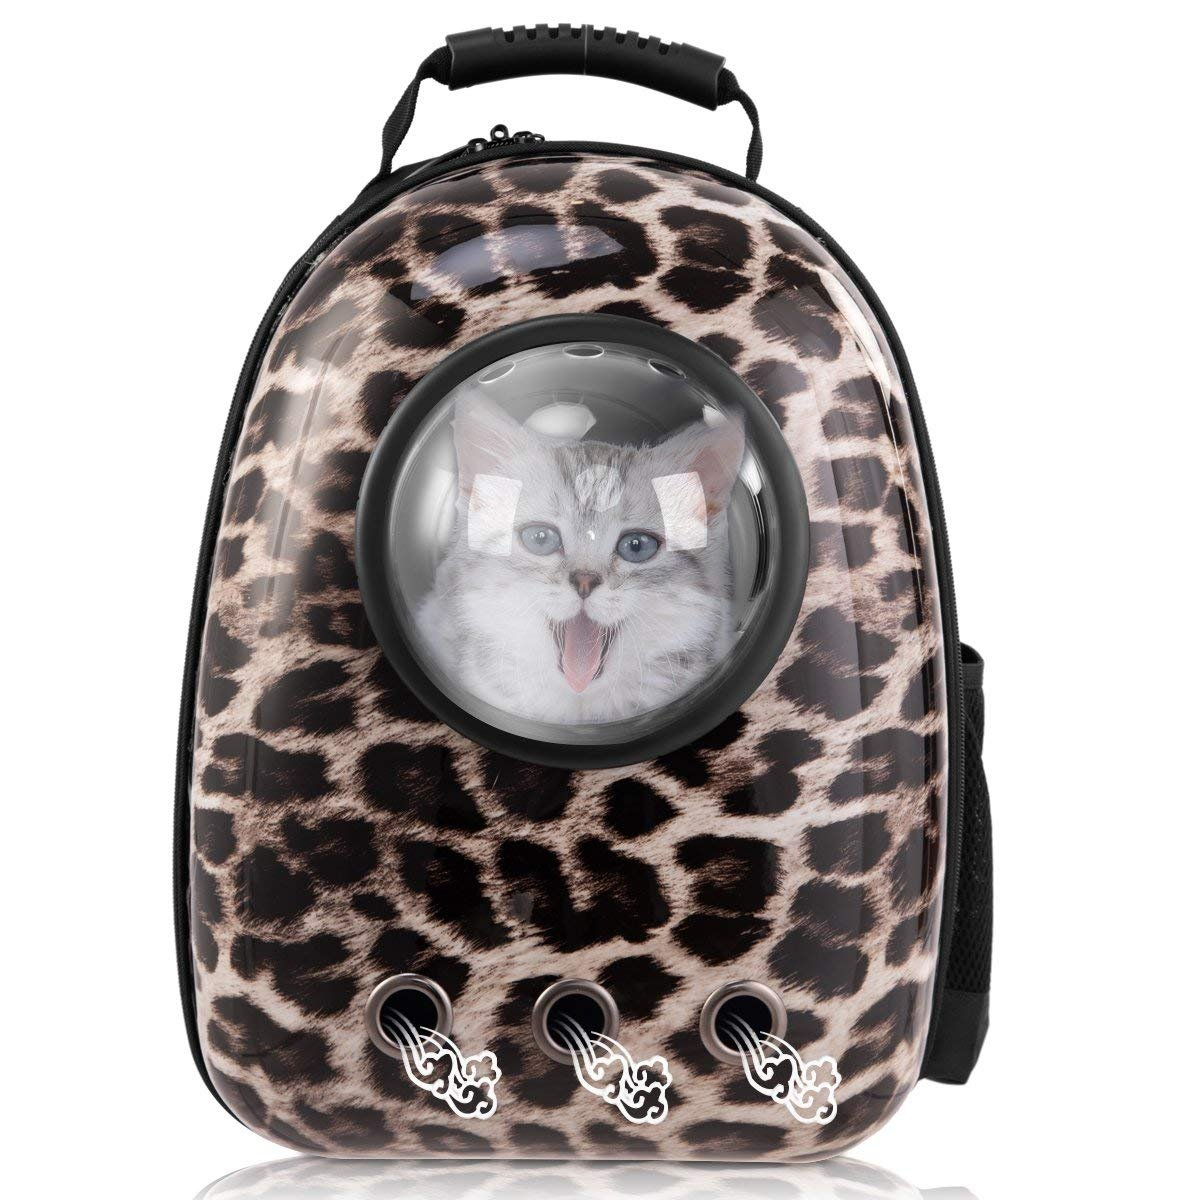 Leopard Print Pet Carrier Travel Bag,TEMACOO Cat Space Capsule Backpack Dog Bubble Traveler Knapsack Multiple Air Vents Breathable Backpack Portable Outside Handbag Fit Puppys Kitties Petite Animals (Leopard Print)